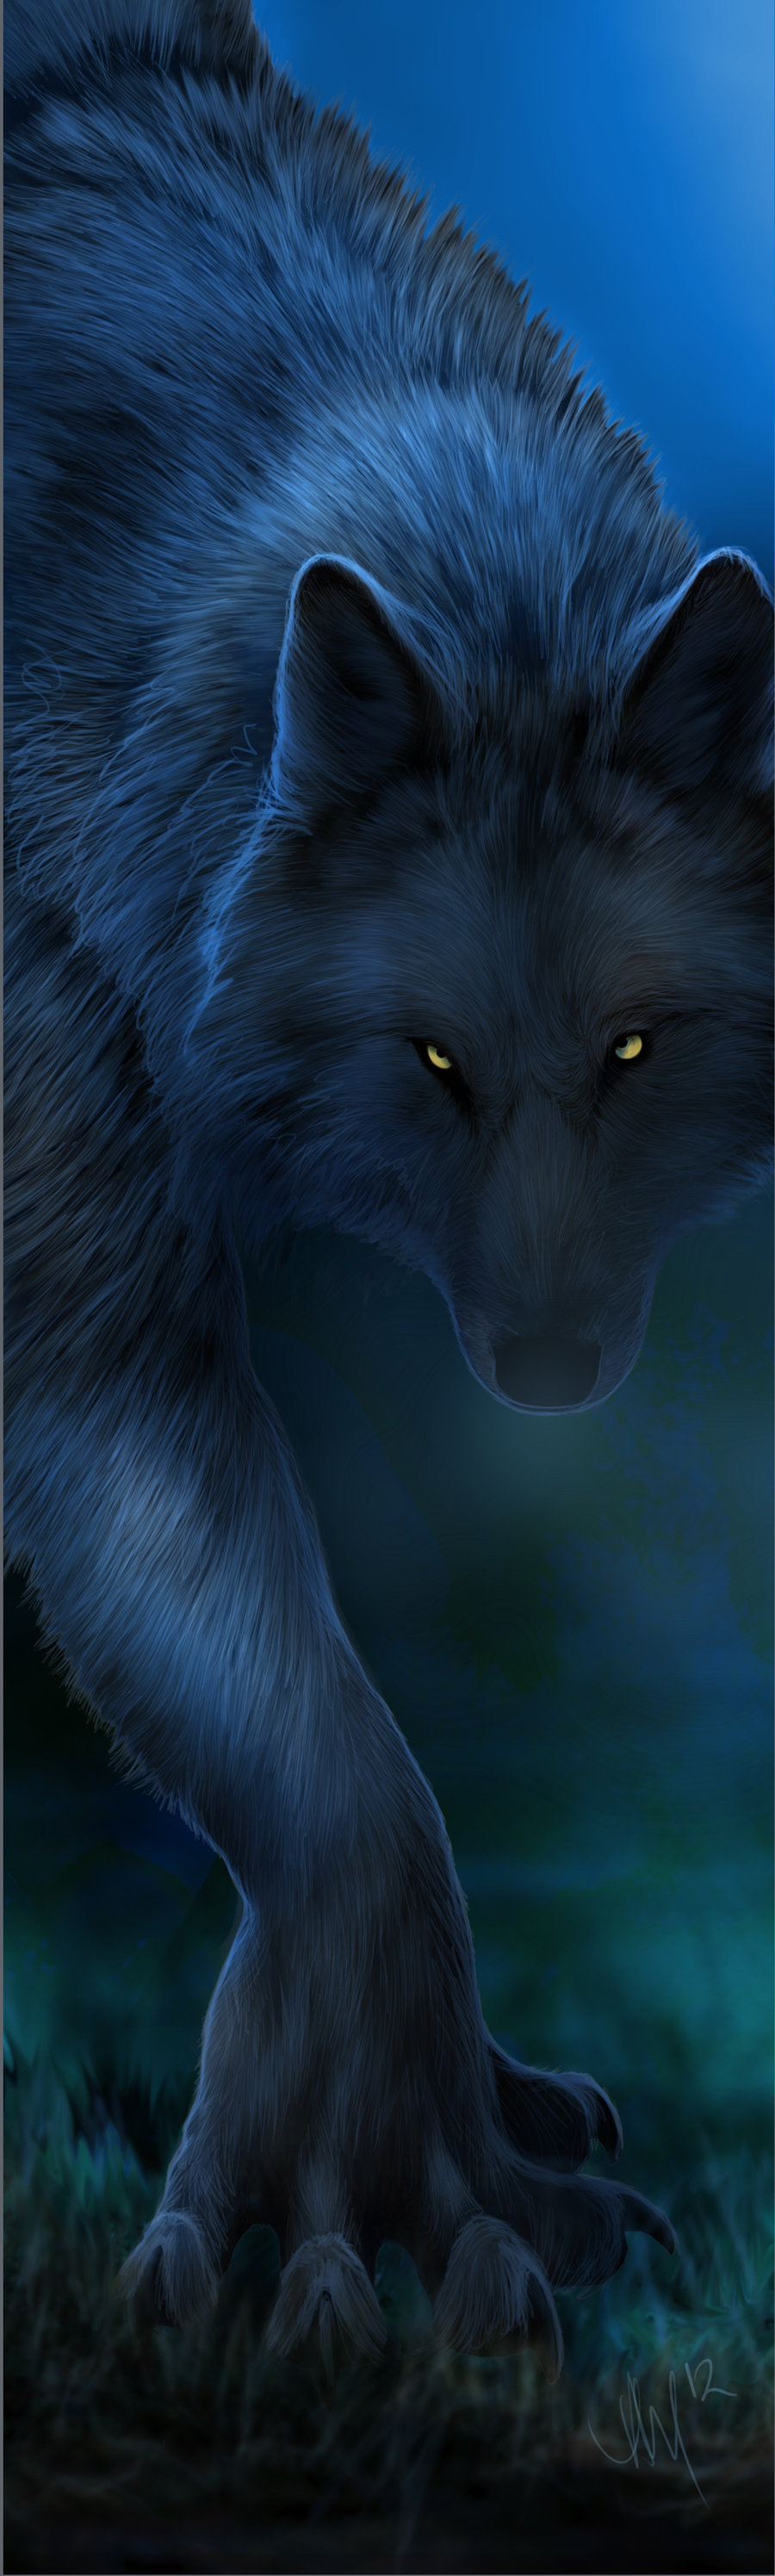 Dark as Midnight by Novawuff.deviantart.com